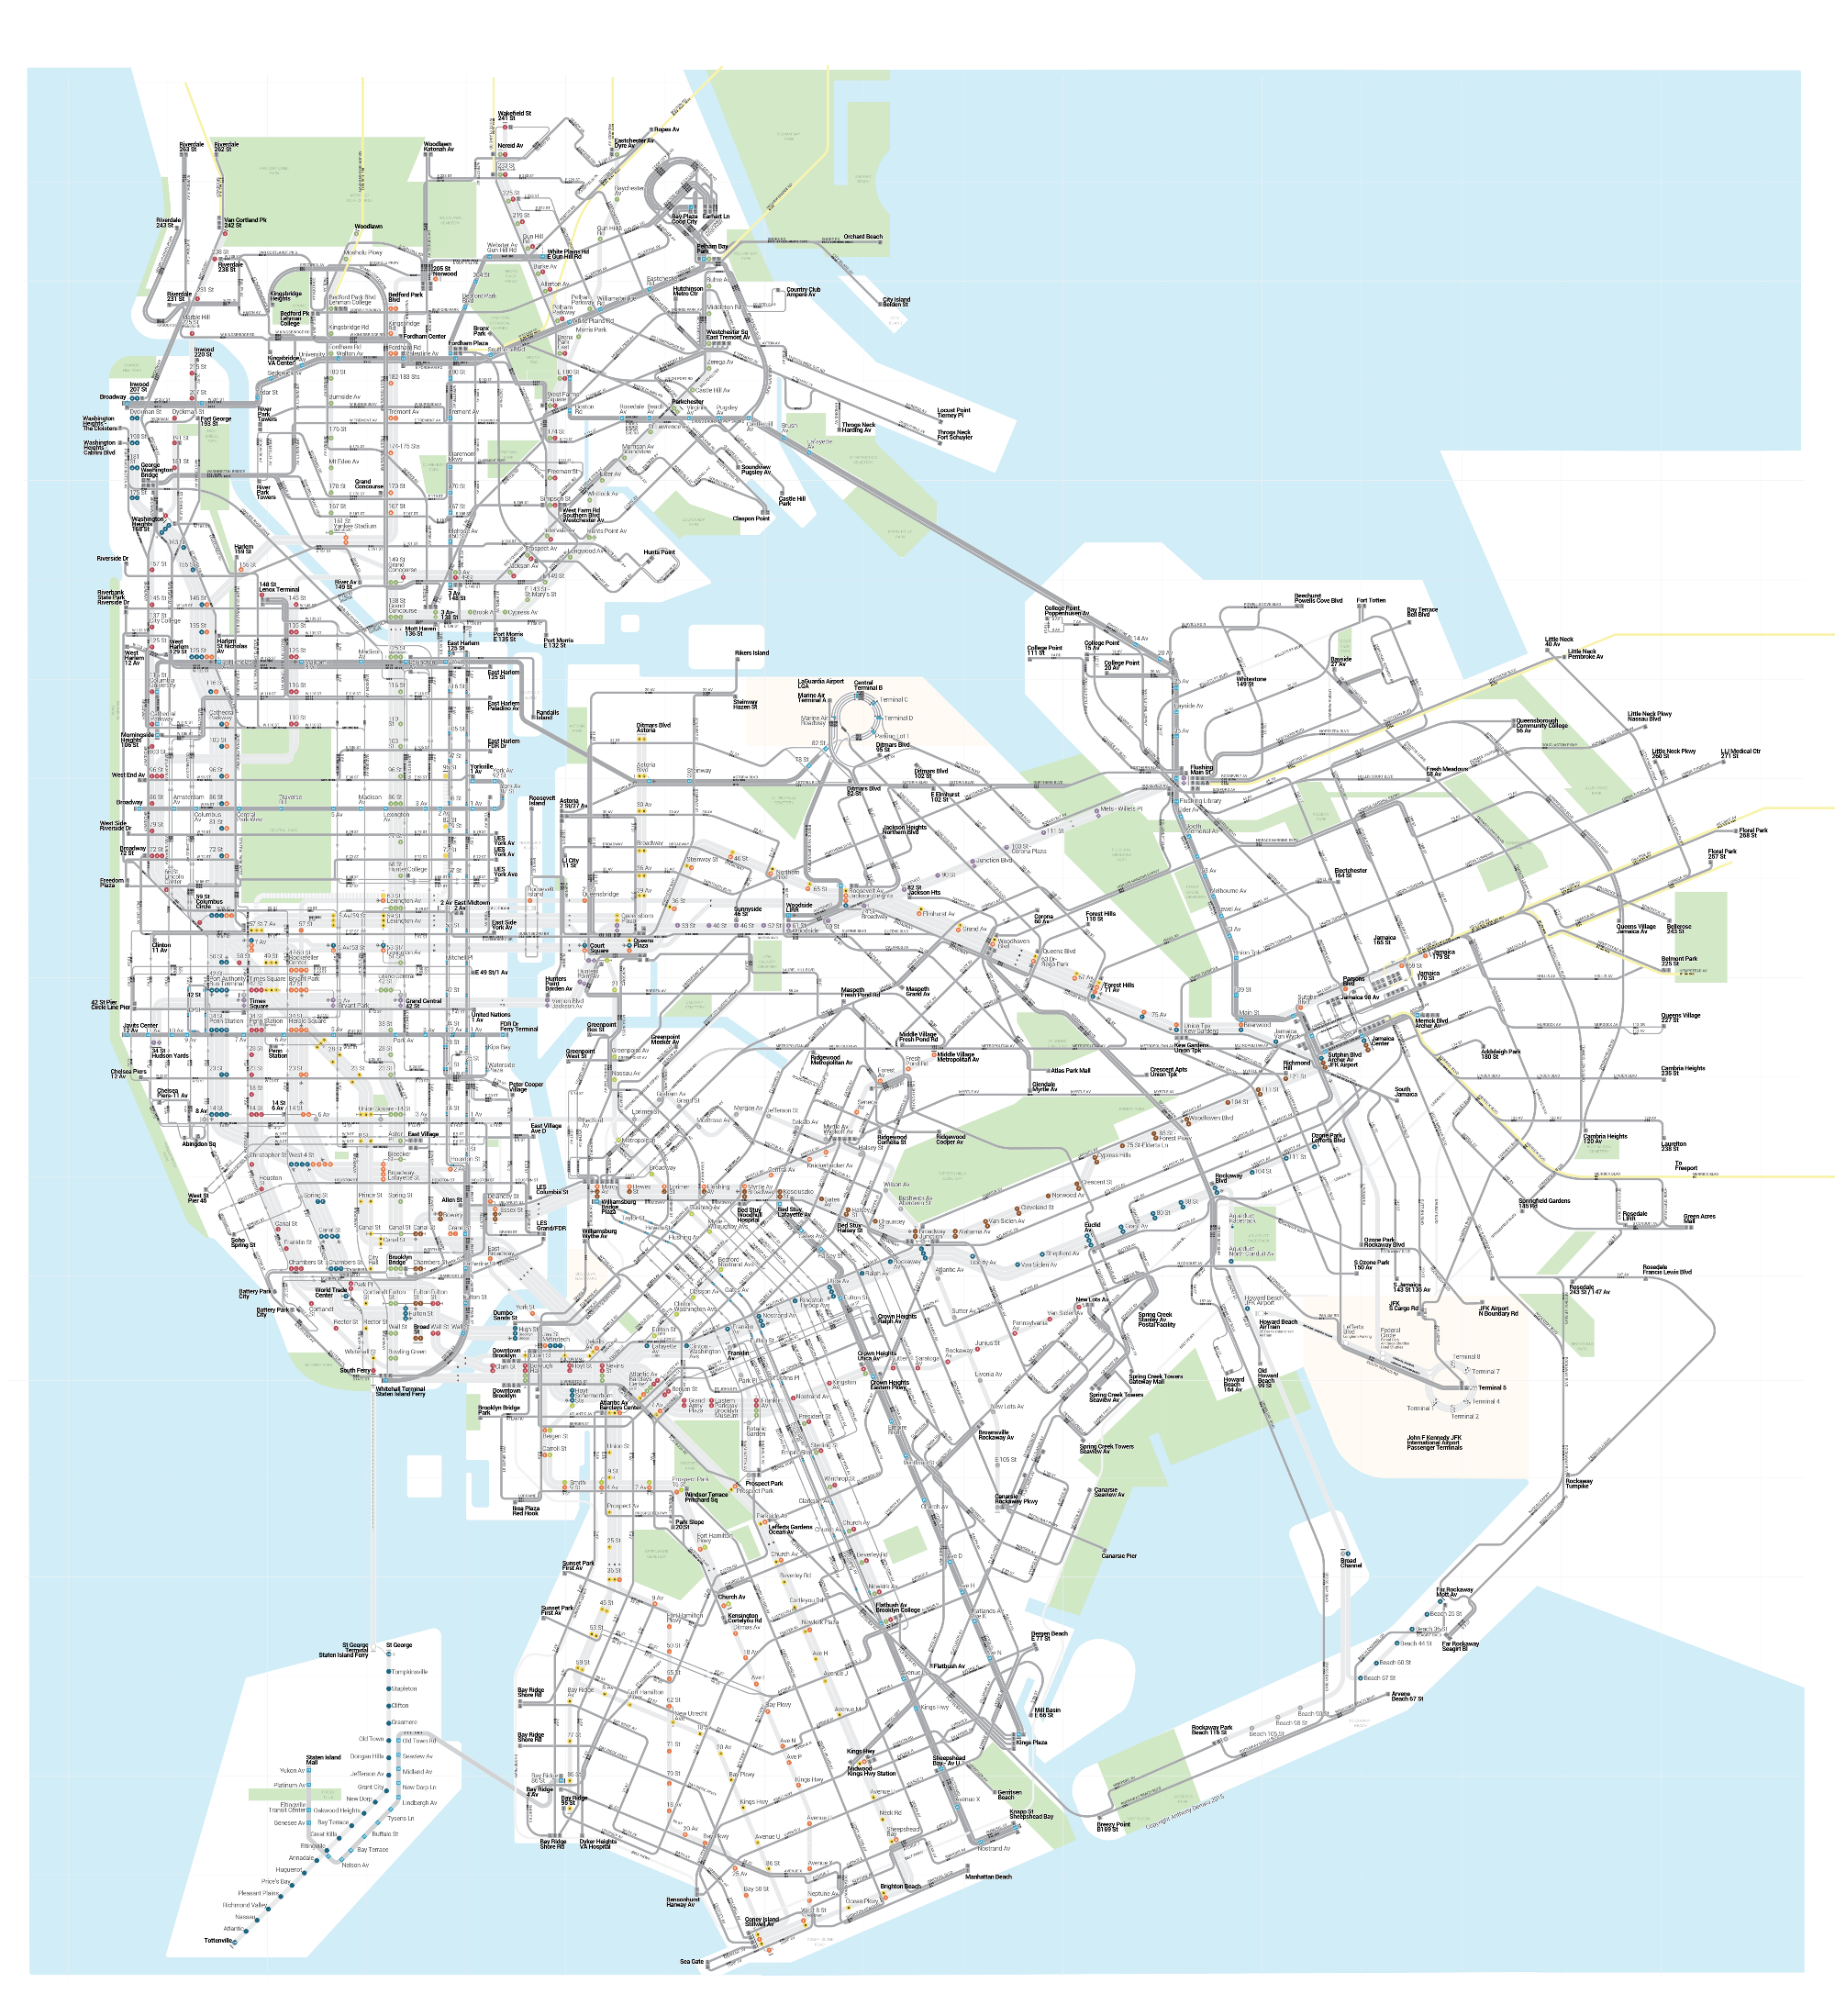 Nyc Subway Map Over Street Map.New York City Subways And Buses All On A Single Map Streetsblog